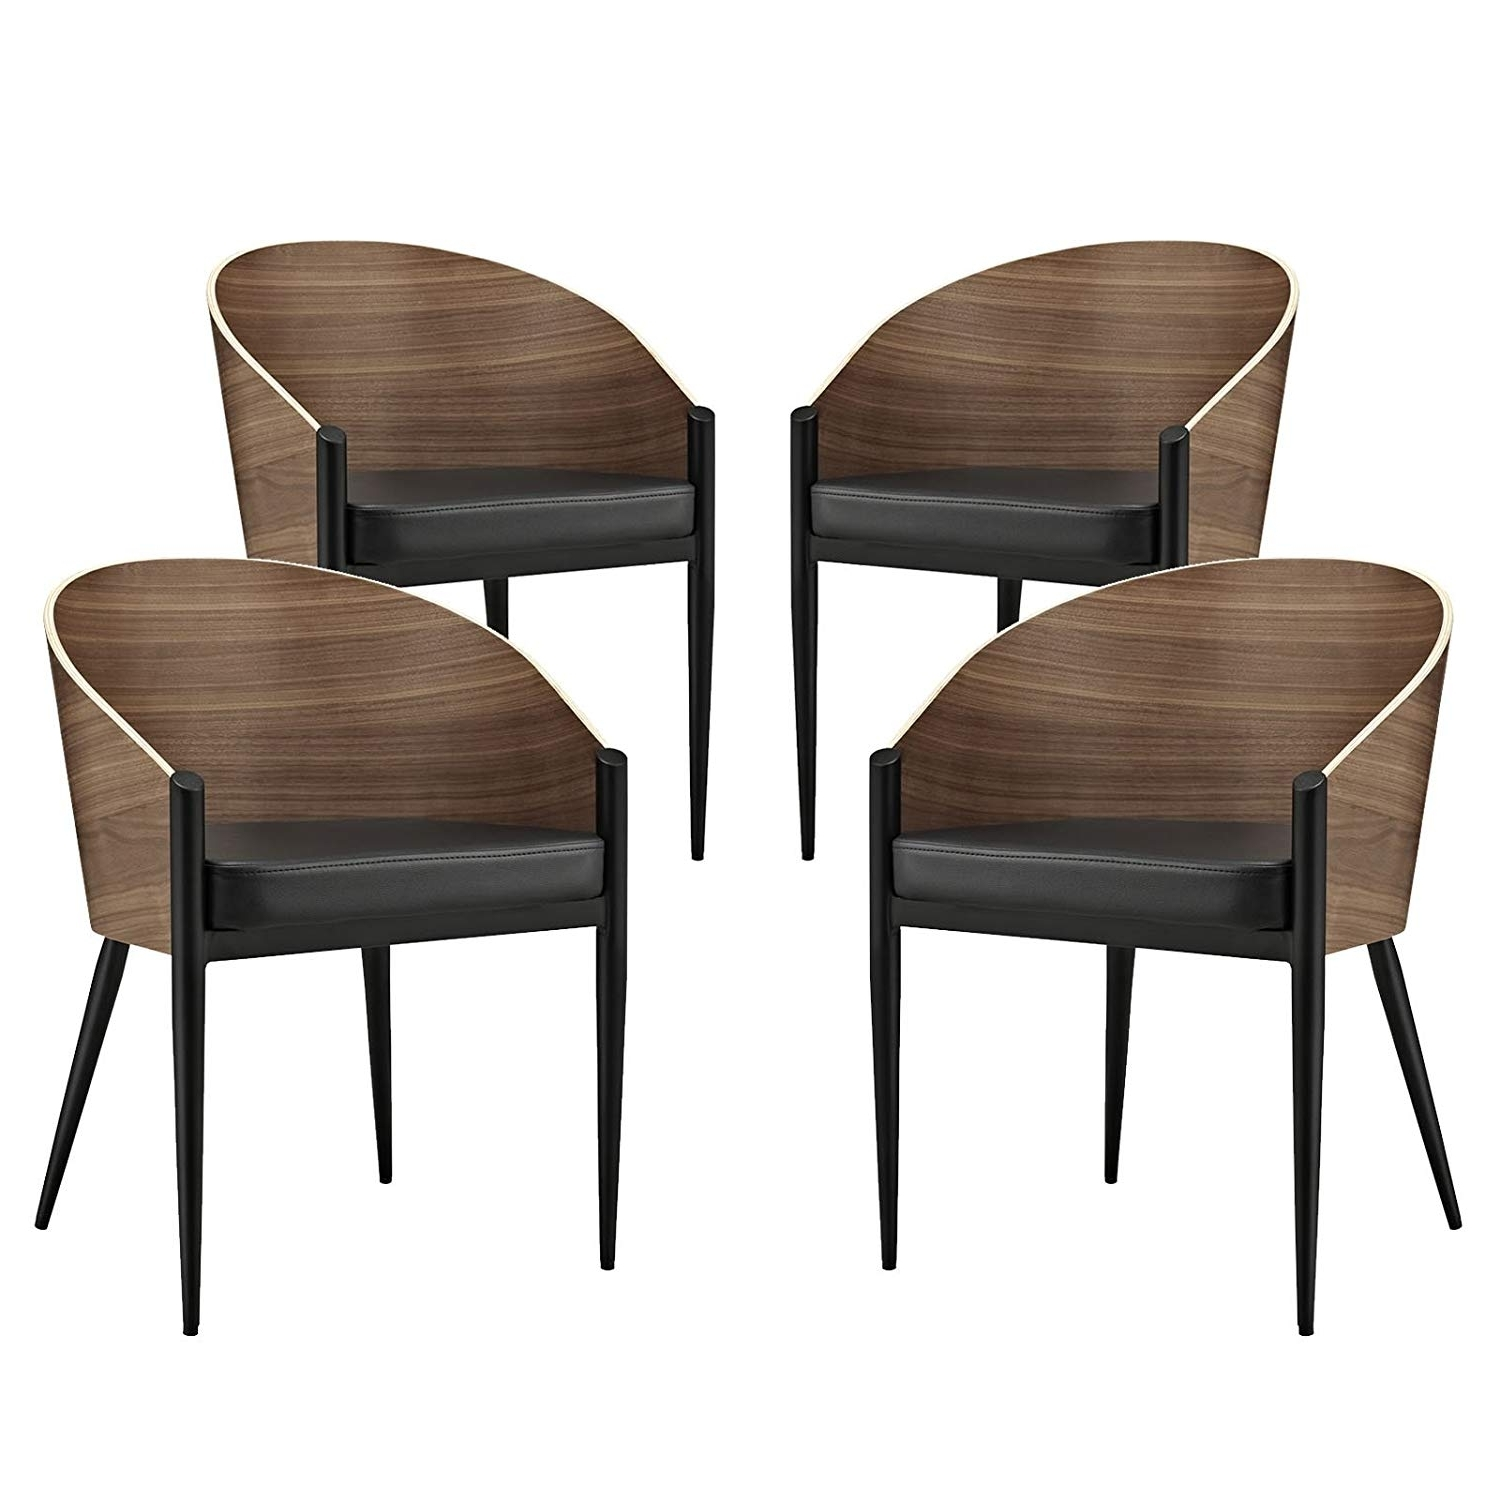 Trendy Amazon – Modway Cooper Dining Chairs Set Of 4 In Walnut – Chairs Within Cooper Upholstered Side Chairs (View 17 of 20)